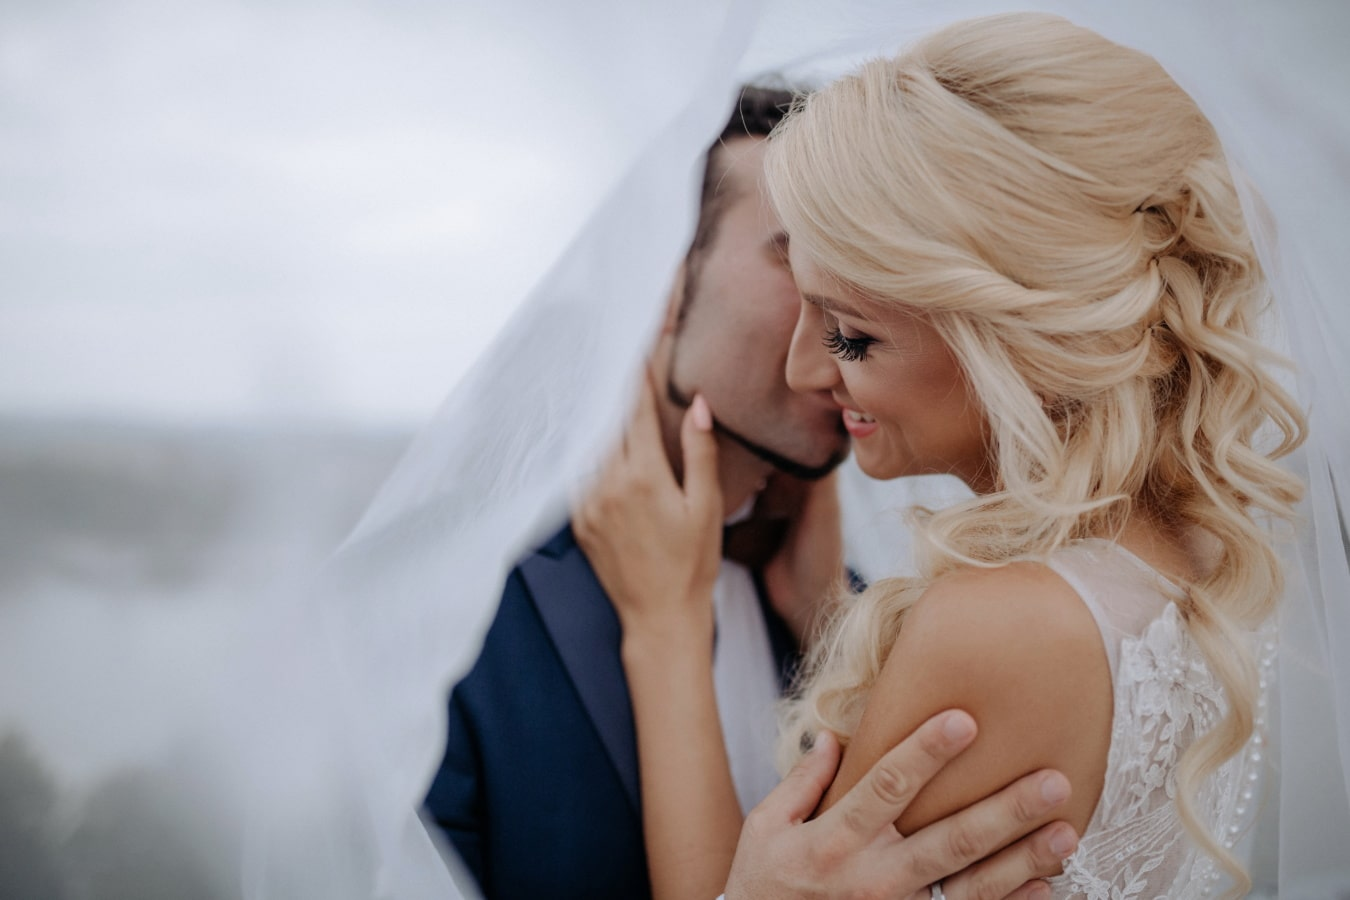 wedding dress, veil, kiss, enjoyment, bride, woman, wedding, portrait, love, groom